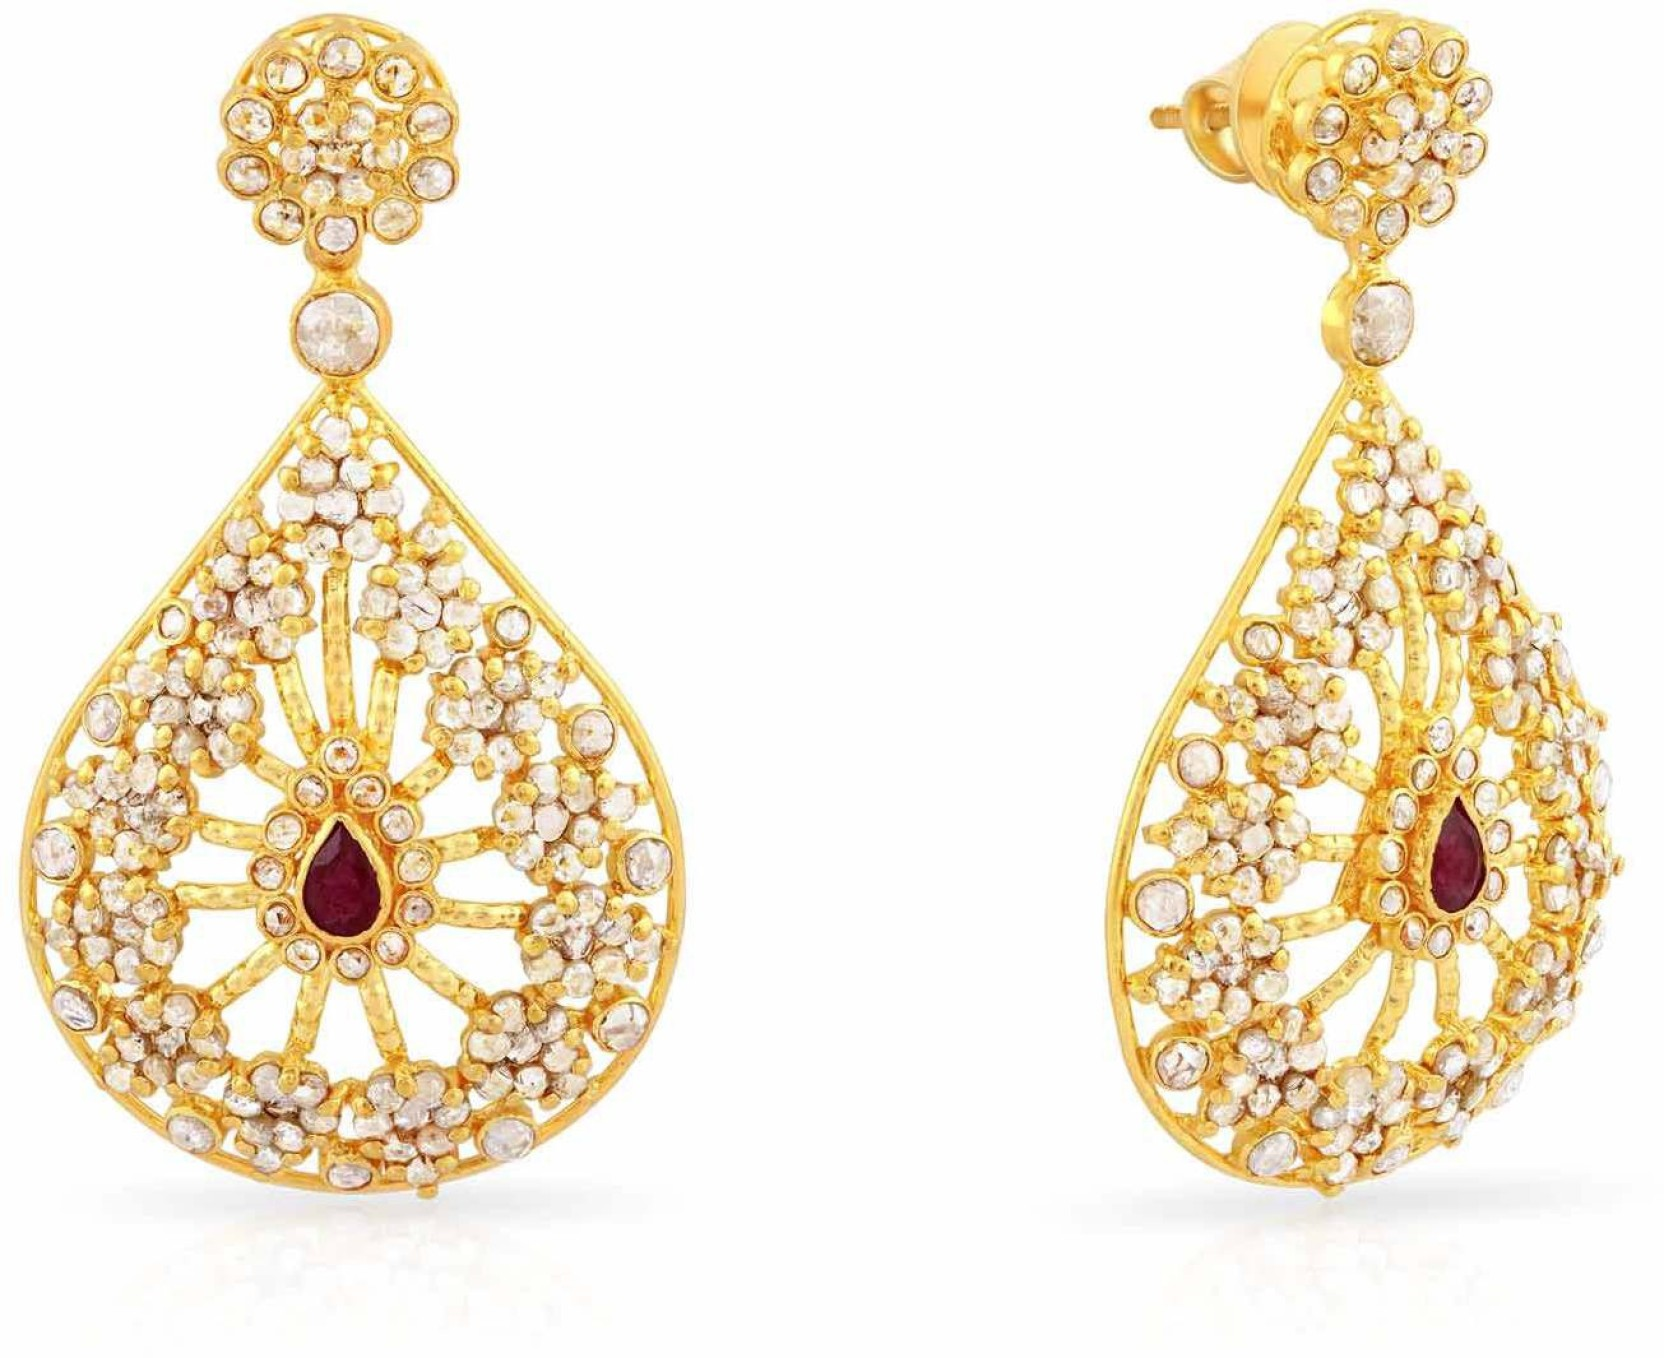 Malabar Gold and Diamonds Yellow Gold 22kt Dangle Earring Price in